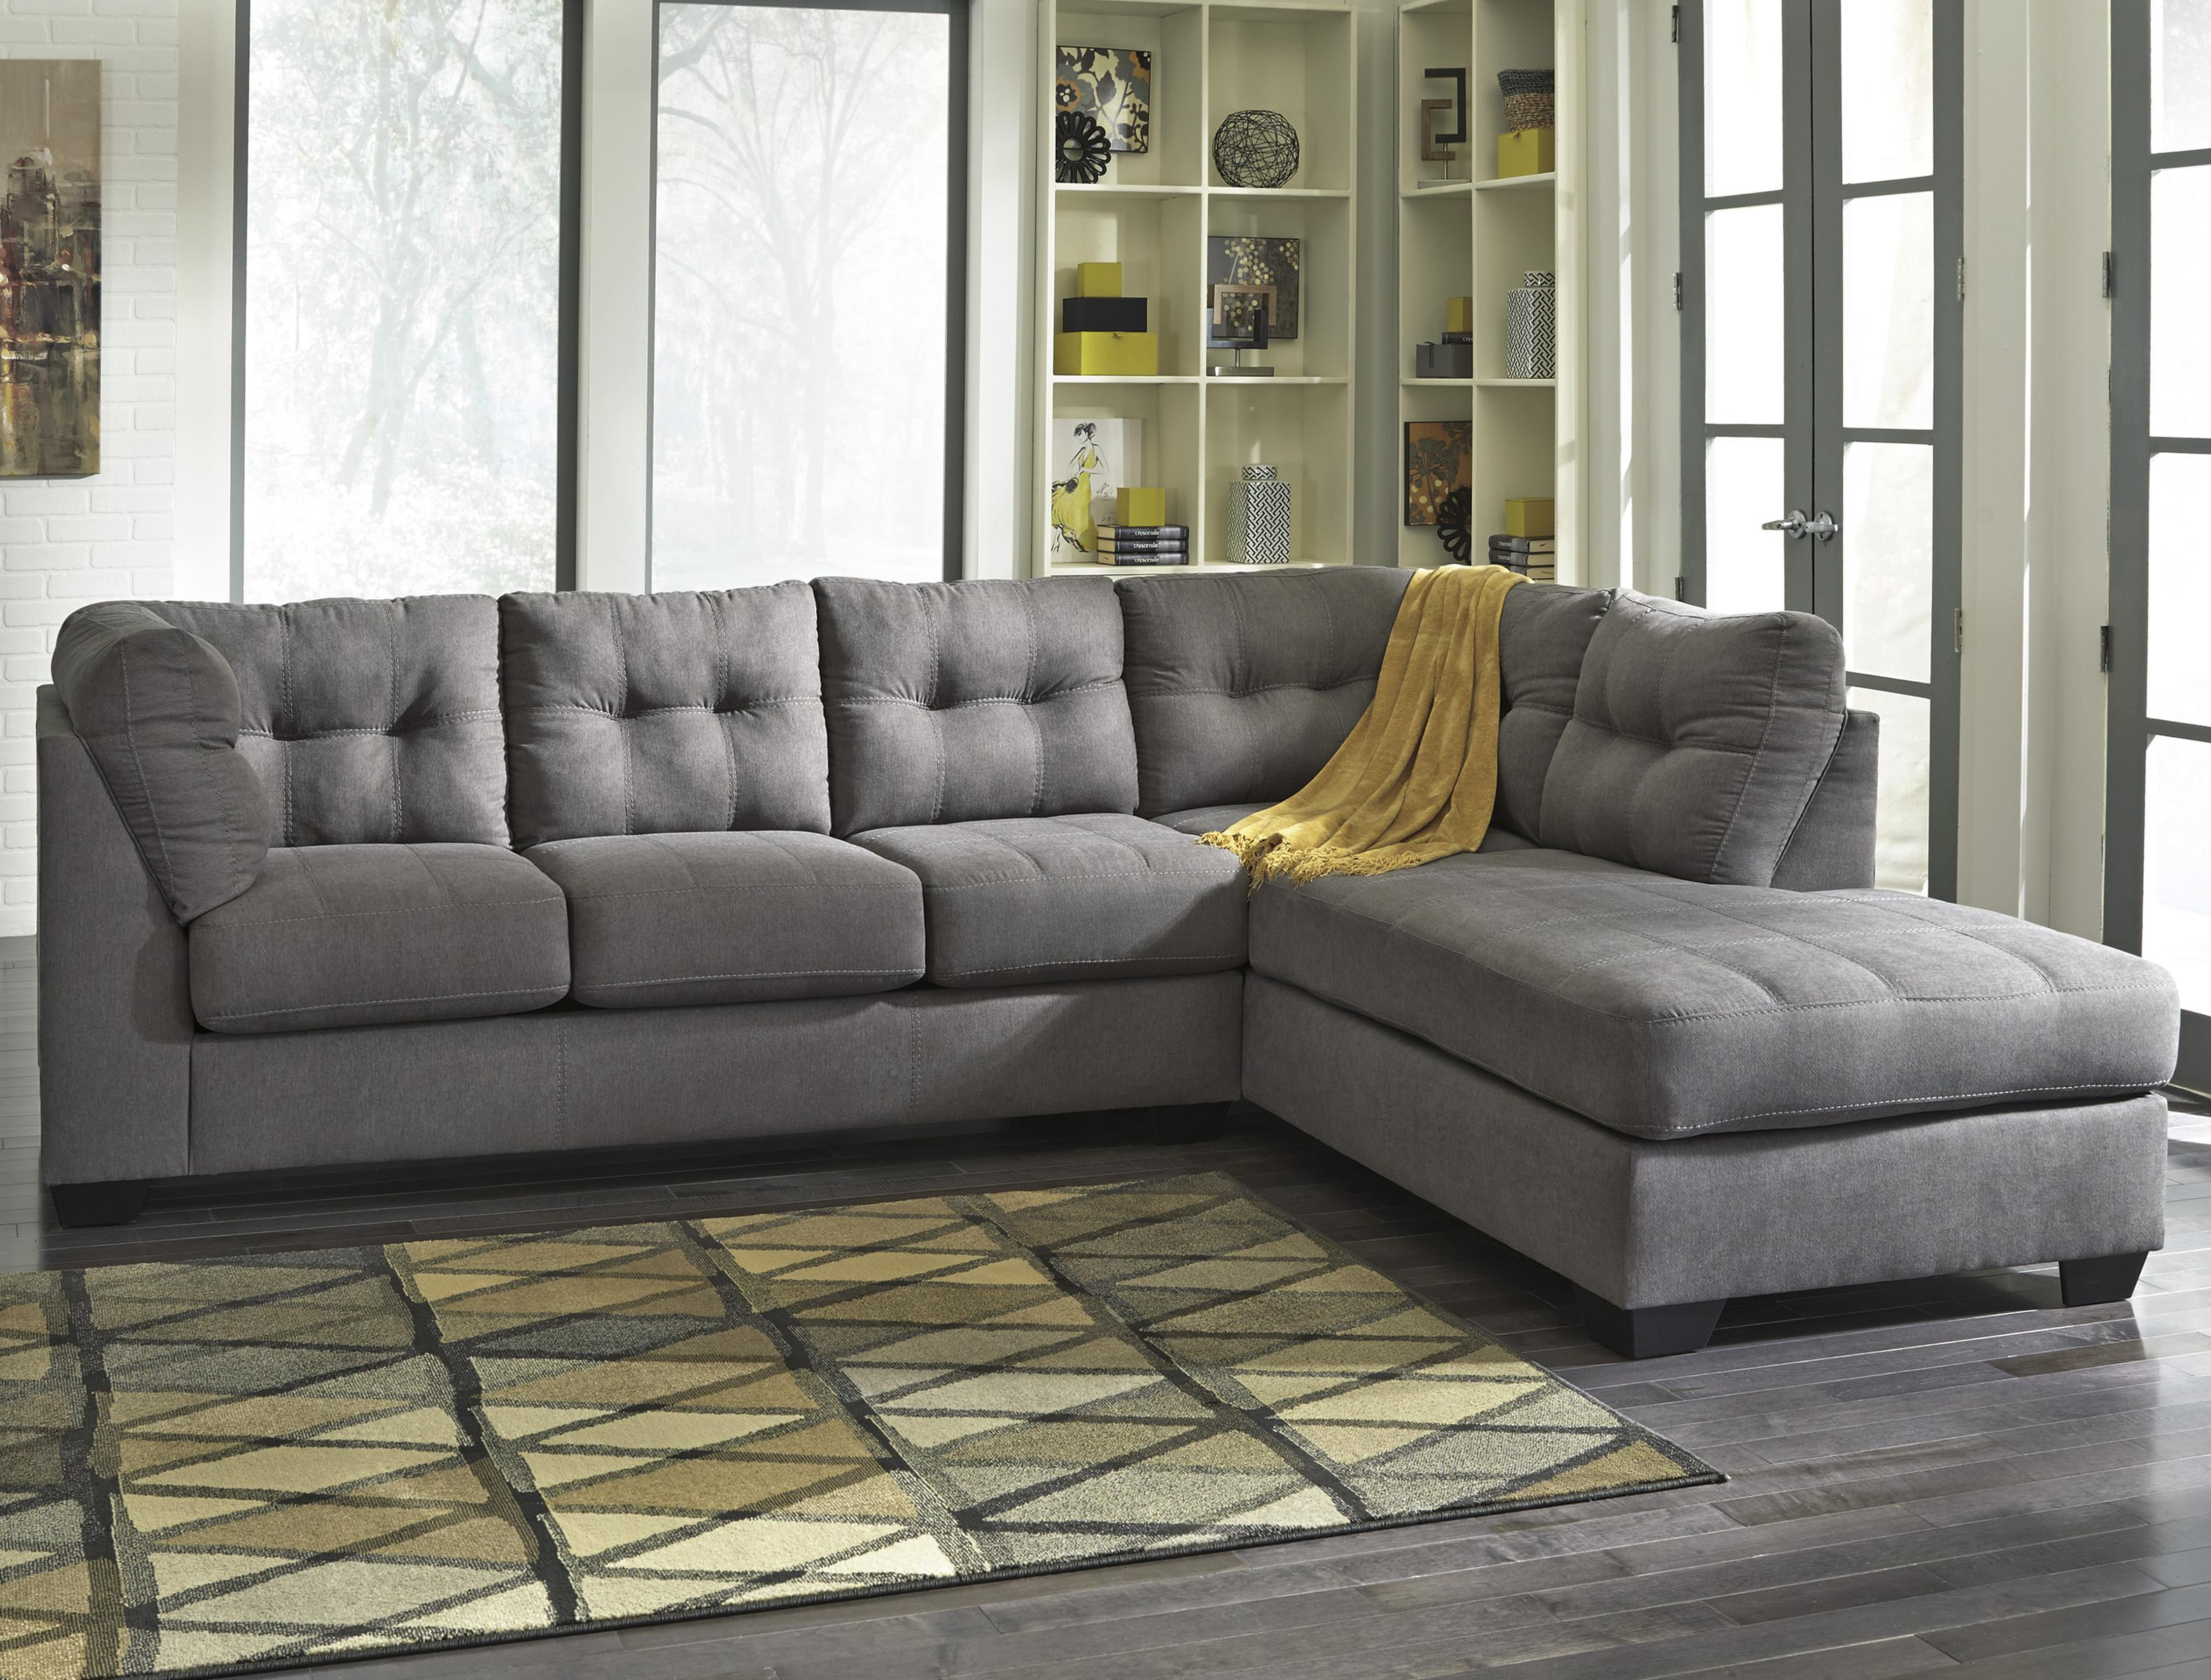 Pull-out sofa bed Benchcraft Maier - anthracite 2-part pull-out sofa with sofa bed & chaise longue - QWUZEAV